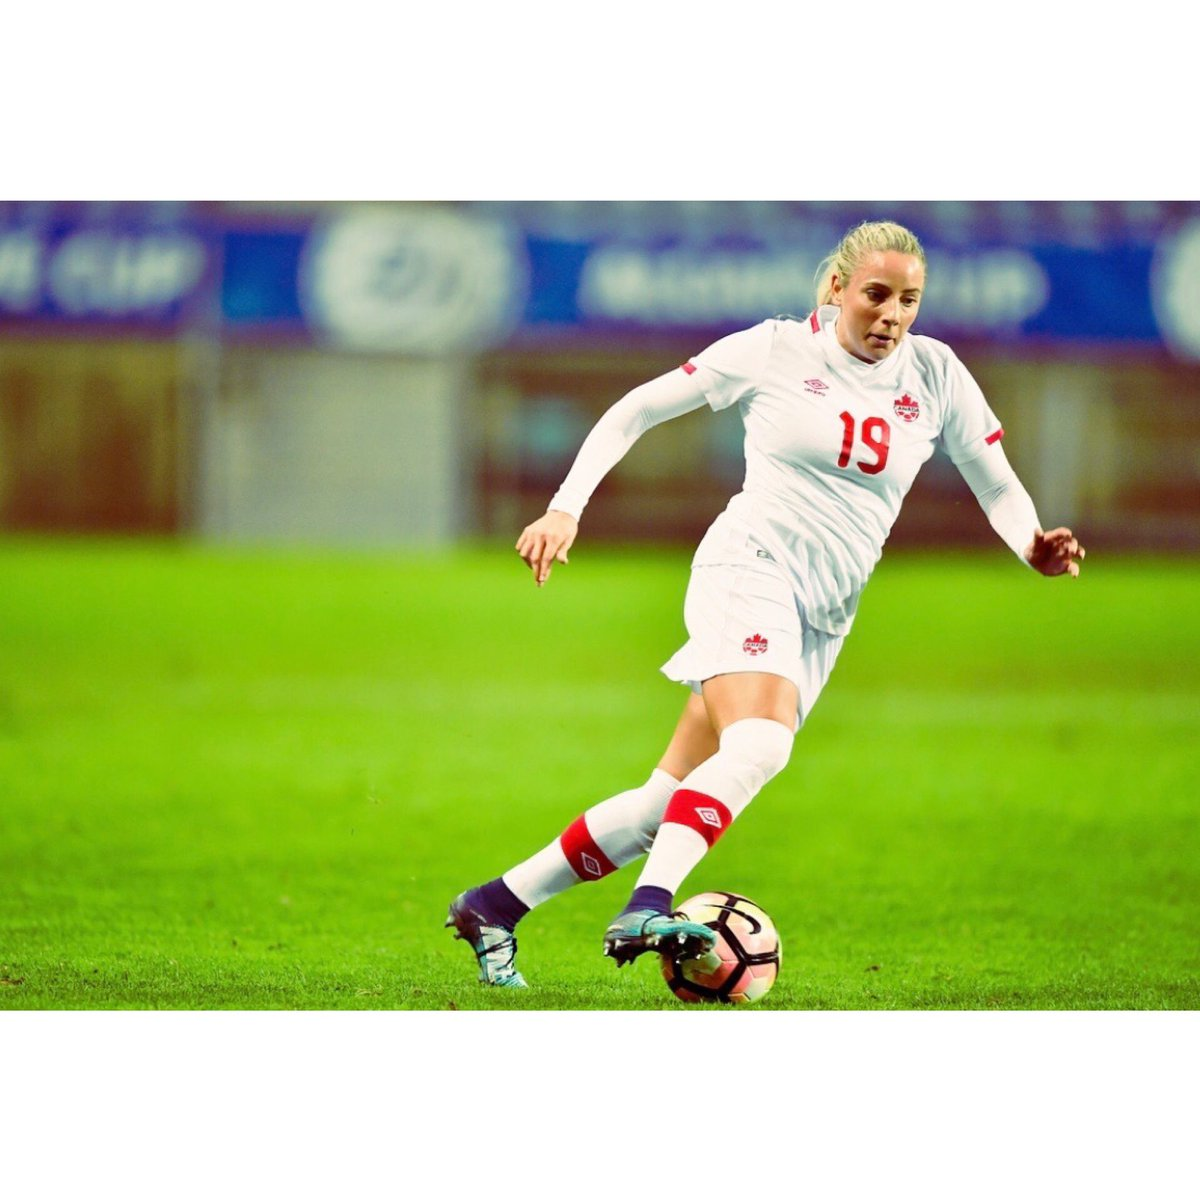 Sporty and fun. #AlgarveCup2018 #CANWNT...